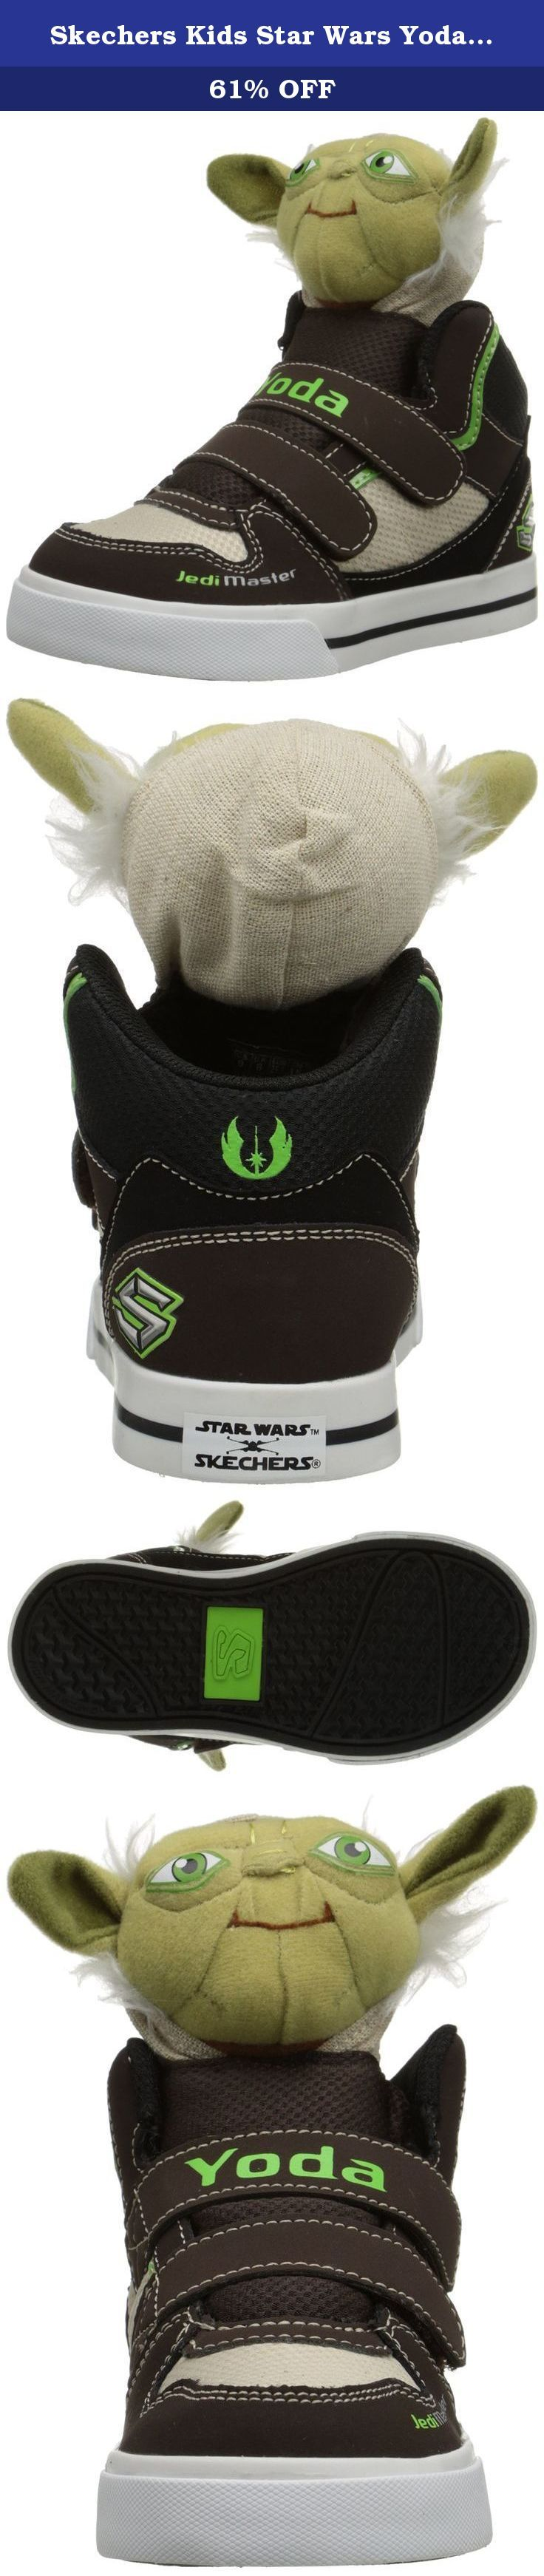 """Skechers Kids Star Wars Yoda Plush Double Strap Sneaker (Toddler), Chocolate/Taupe, 5 M US Toddler. Printed Star Warsâ""""¢ designs and Yodaâ""""¢ plush detailing. Master Yodaâ""""¢ features printed eyes, soft sculpture features, adorable fabric ears and tufts of faux-fur on the sides. Rubber toe cap front. Dual hook-and-loop closure for easy on and off. Padded collar and tongue for added comfort. Soft fabric lining and cushioned insole create a comfortable environment for the foot. Shock…"""